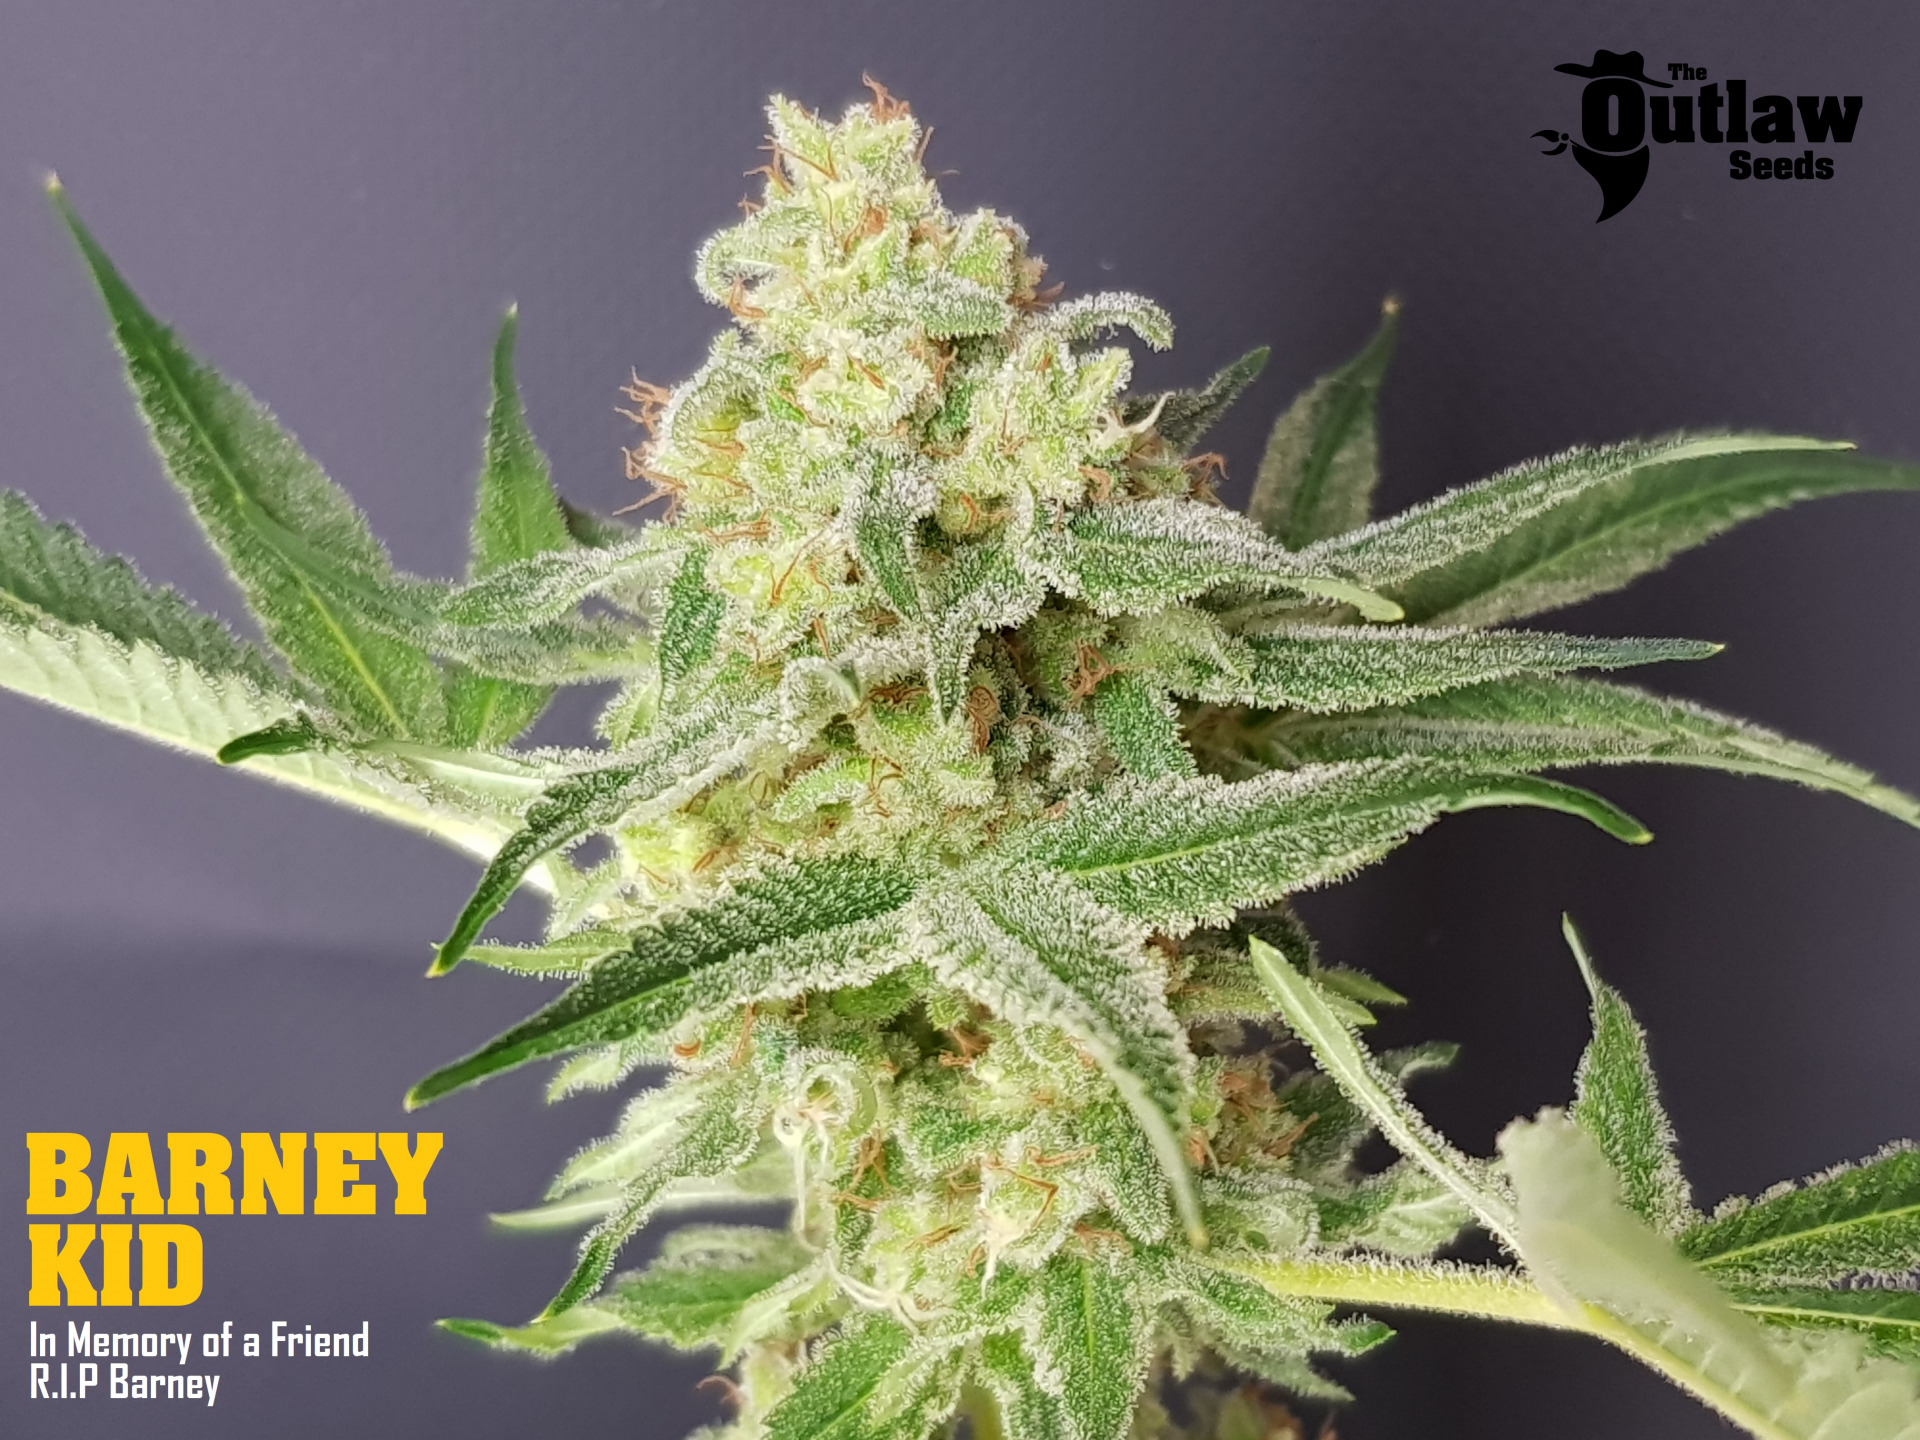 The Outlaw Seeds Barney Kid